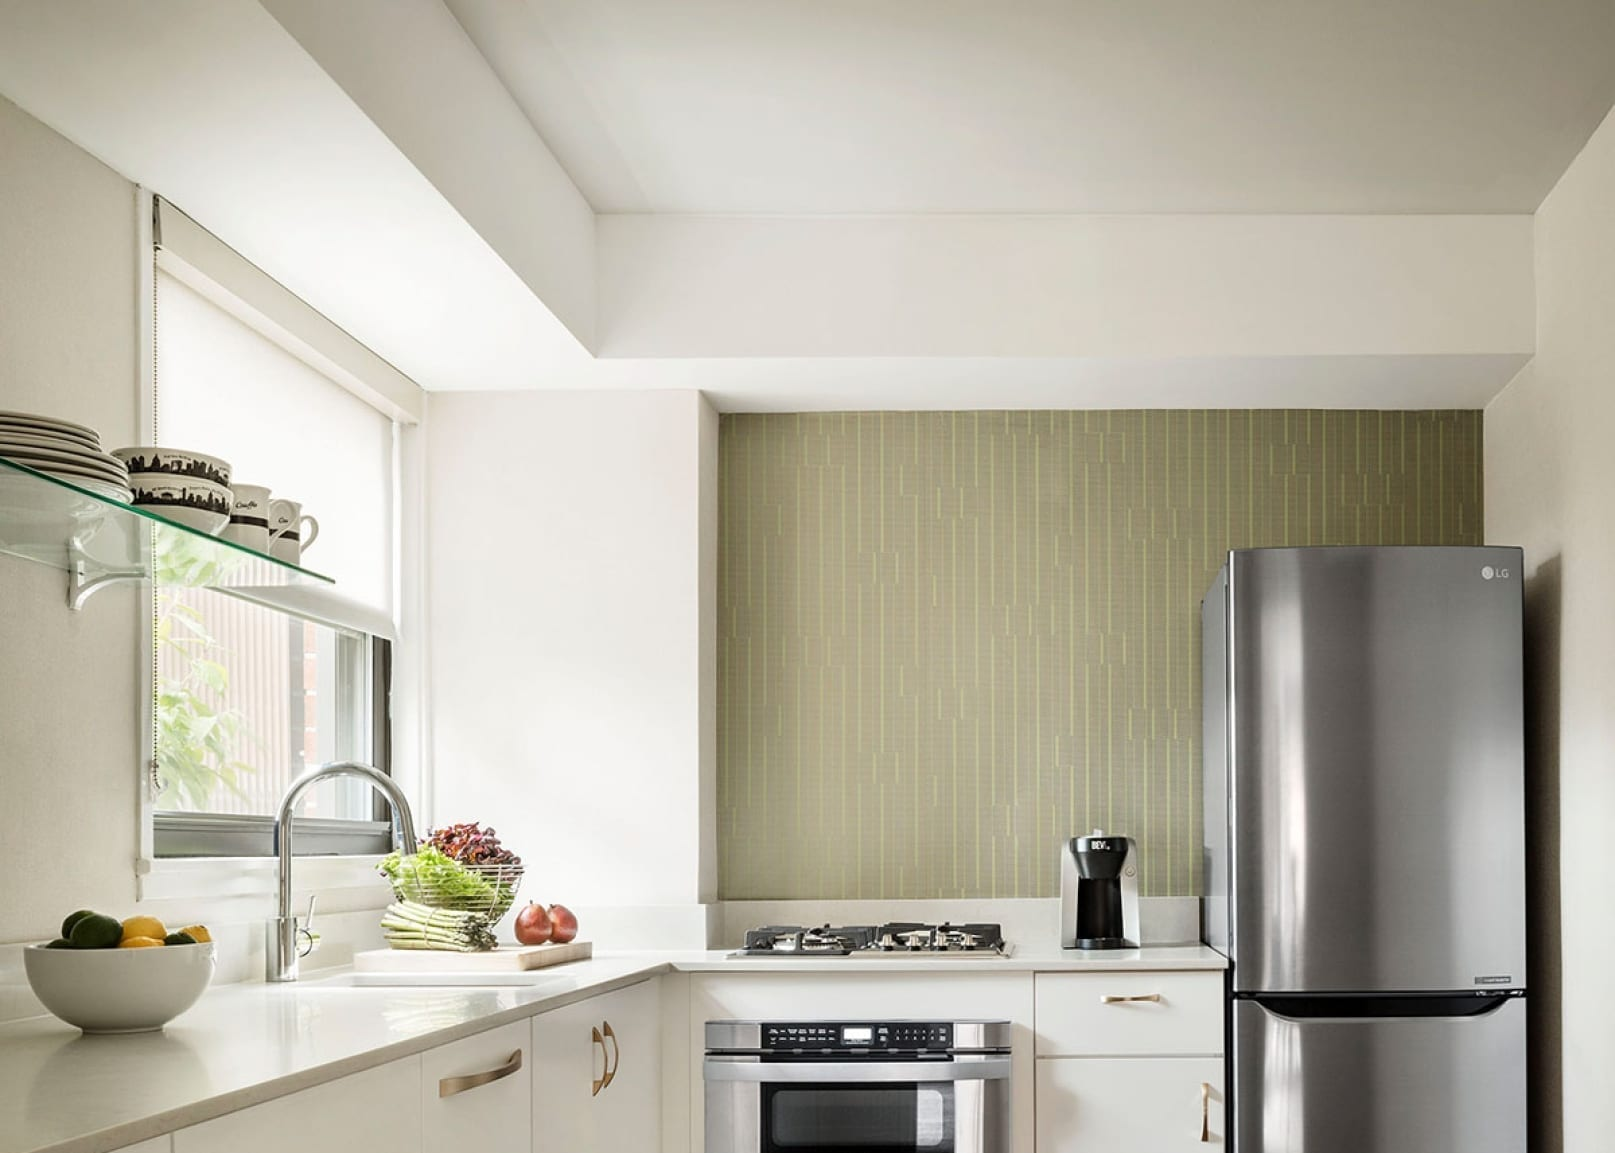 Looking into a kitchen of Affinia Gardens Suites. A window lets in light at the kitchen sink. An oven and tall silver fridge are placed against the side wall.